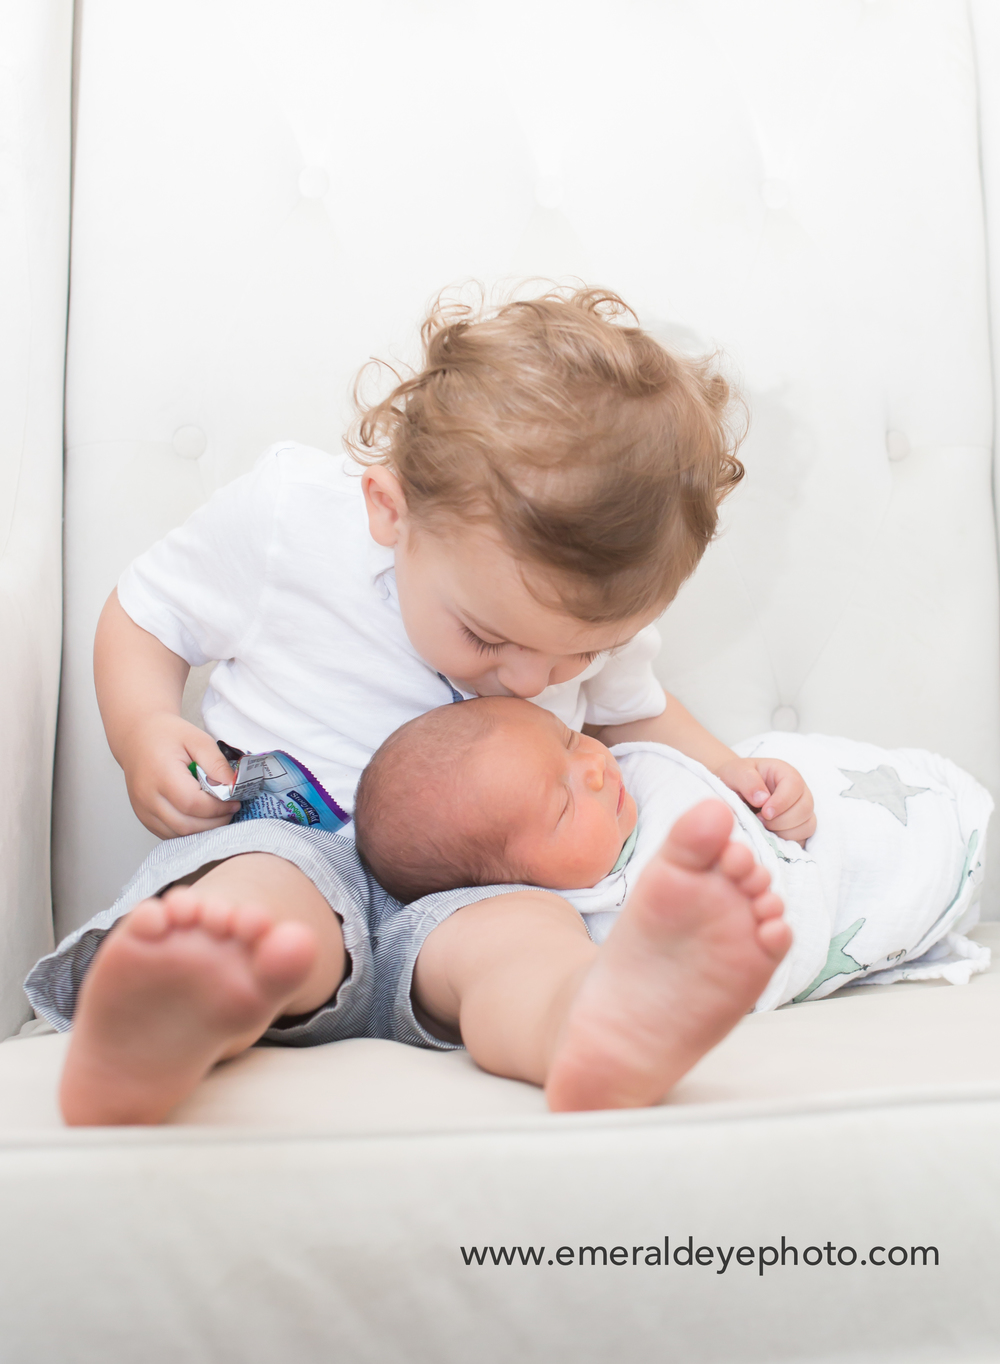 Toddler kisses baby brother during LIfestyle session in Massachusetts